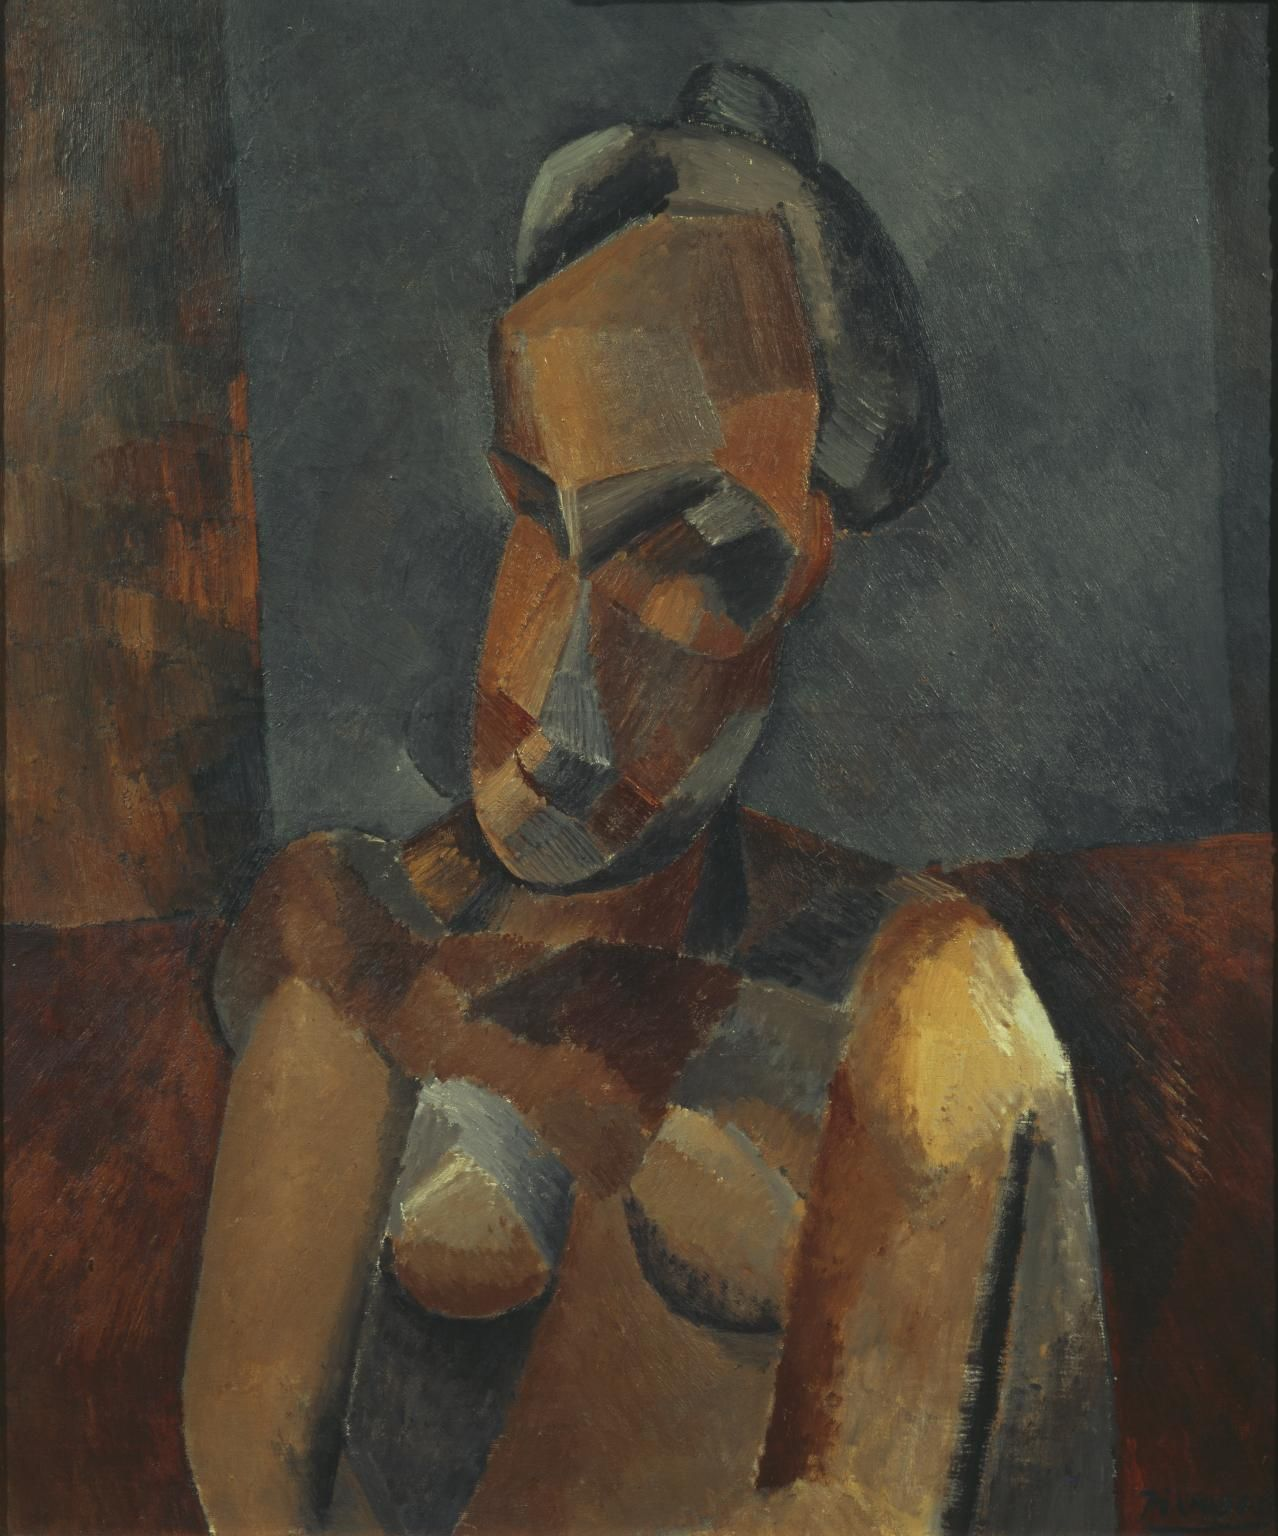 Pablo Picasso Bust of a Woman 1909